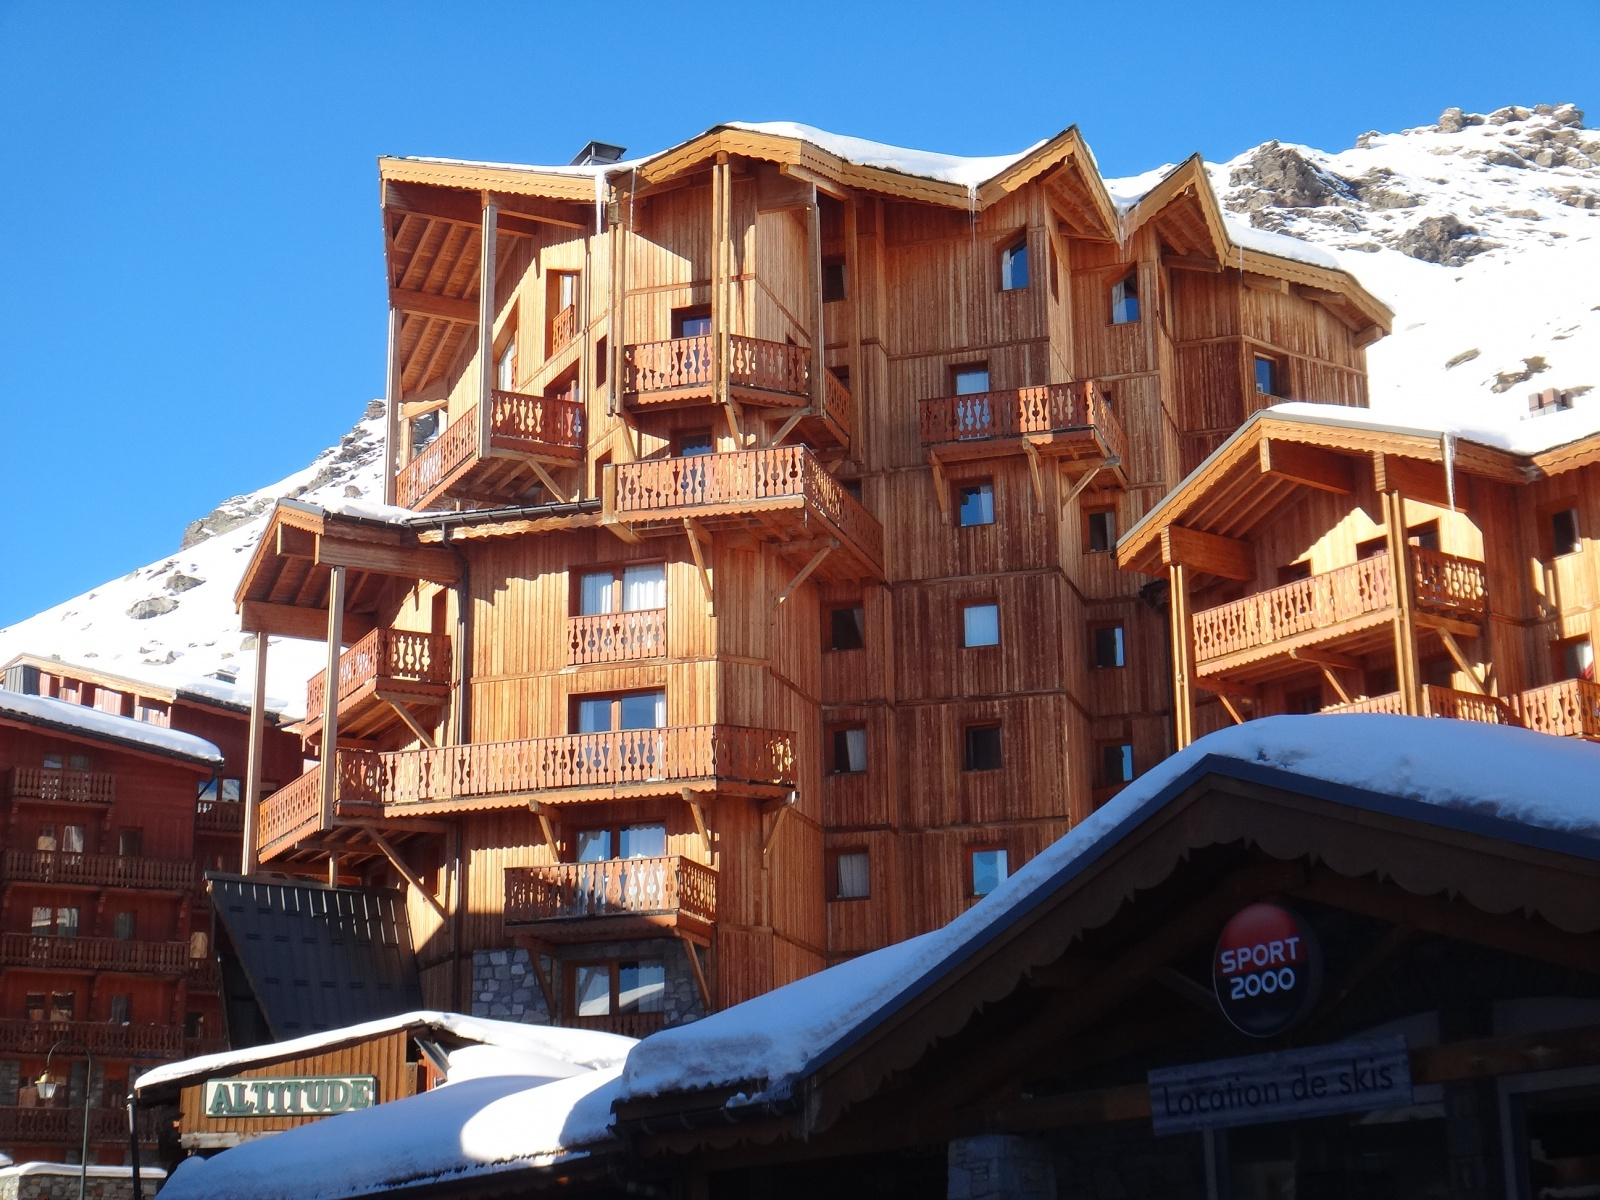 Chalet Altitude in Val Thorens